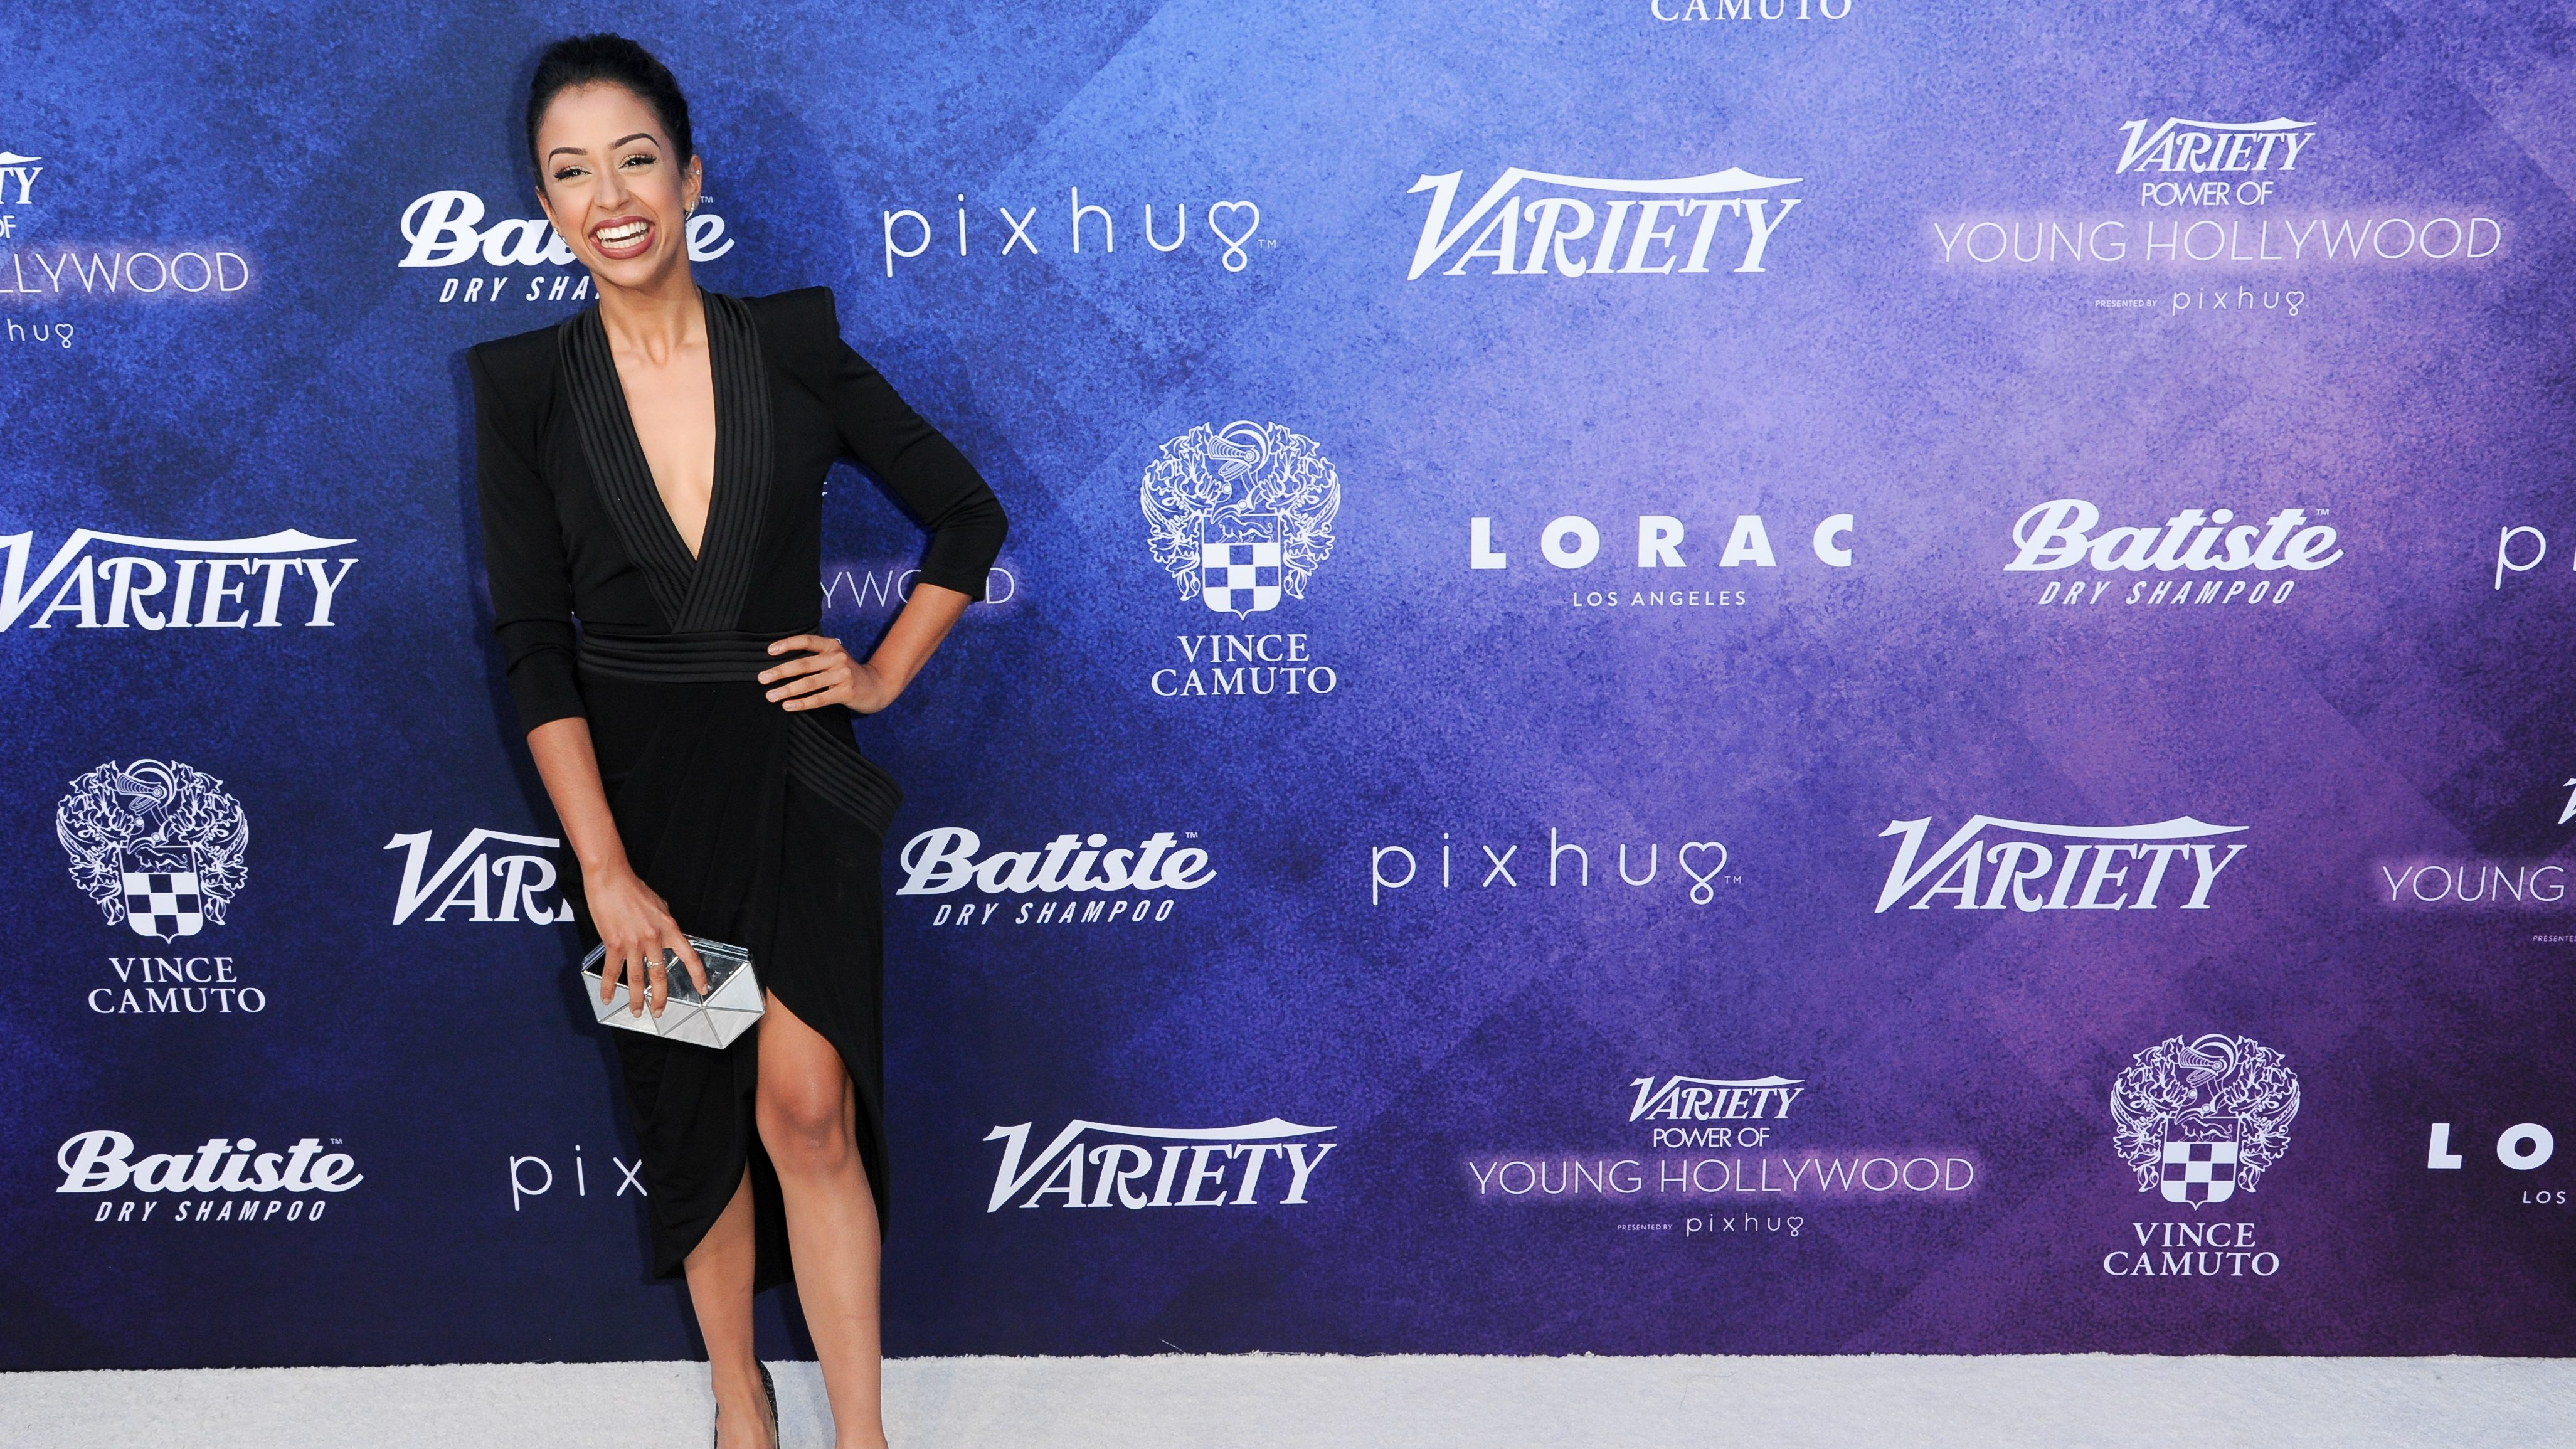 Liza Koshy attends Variety's Power of Young Hollywood event at NeueHouse Hollywood on Tuesday, Aug. 16, 2016, in Los Angeles. (Photo by Richard Shotwell/Invision/AP)